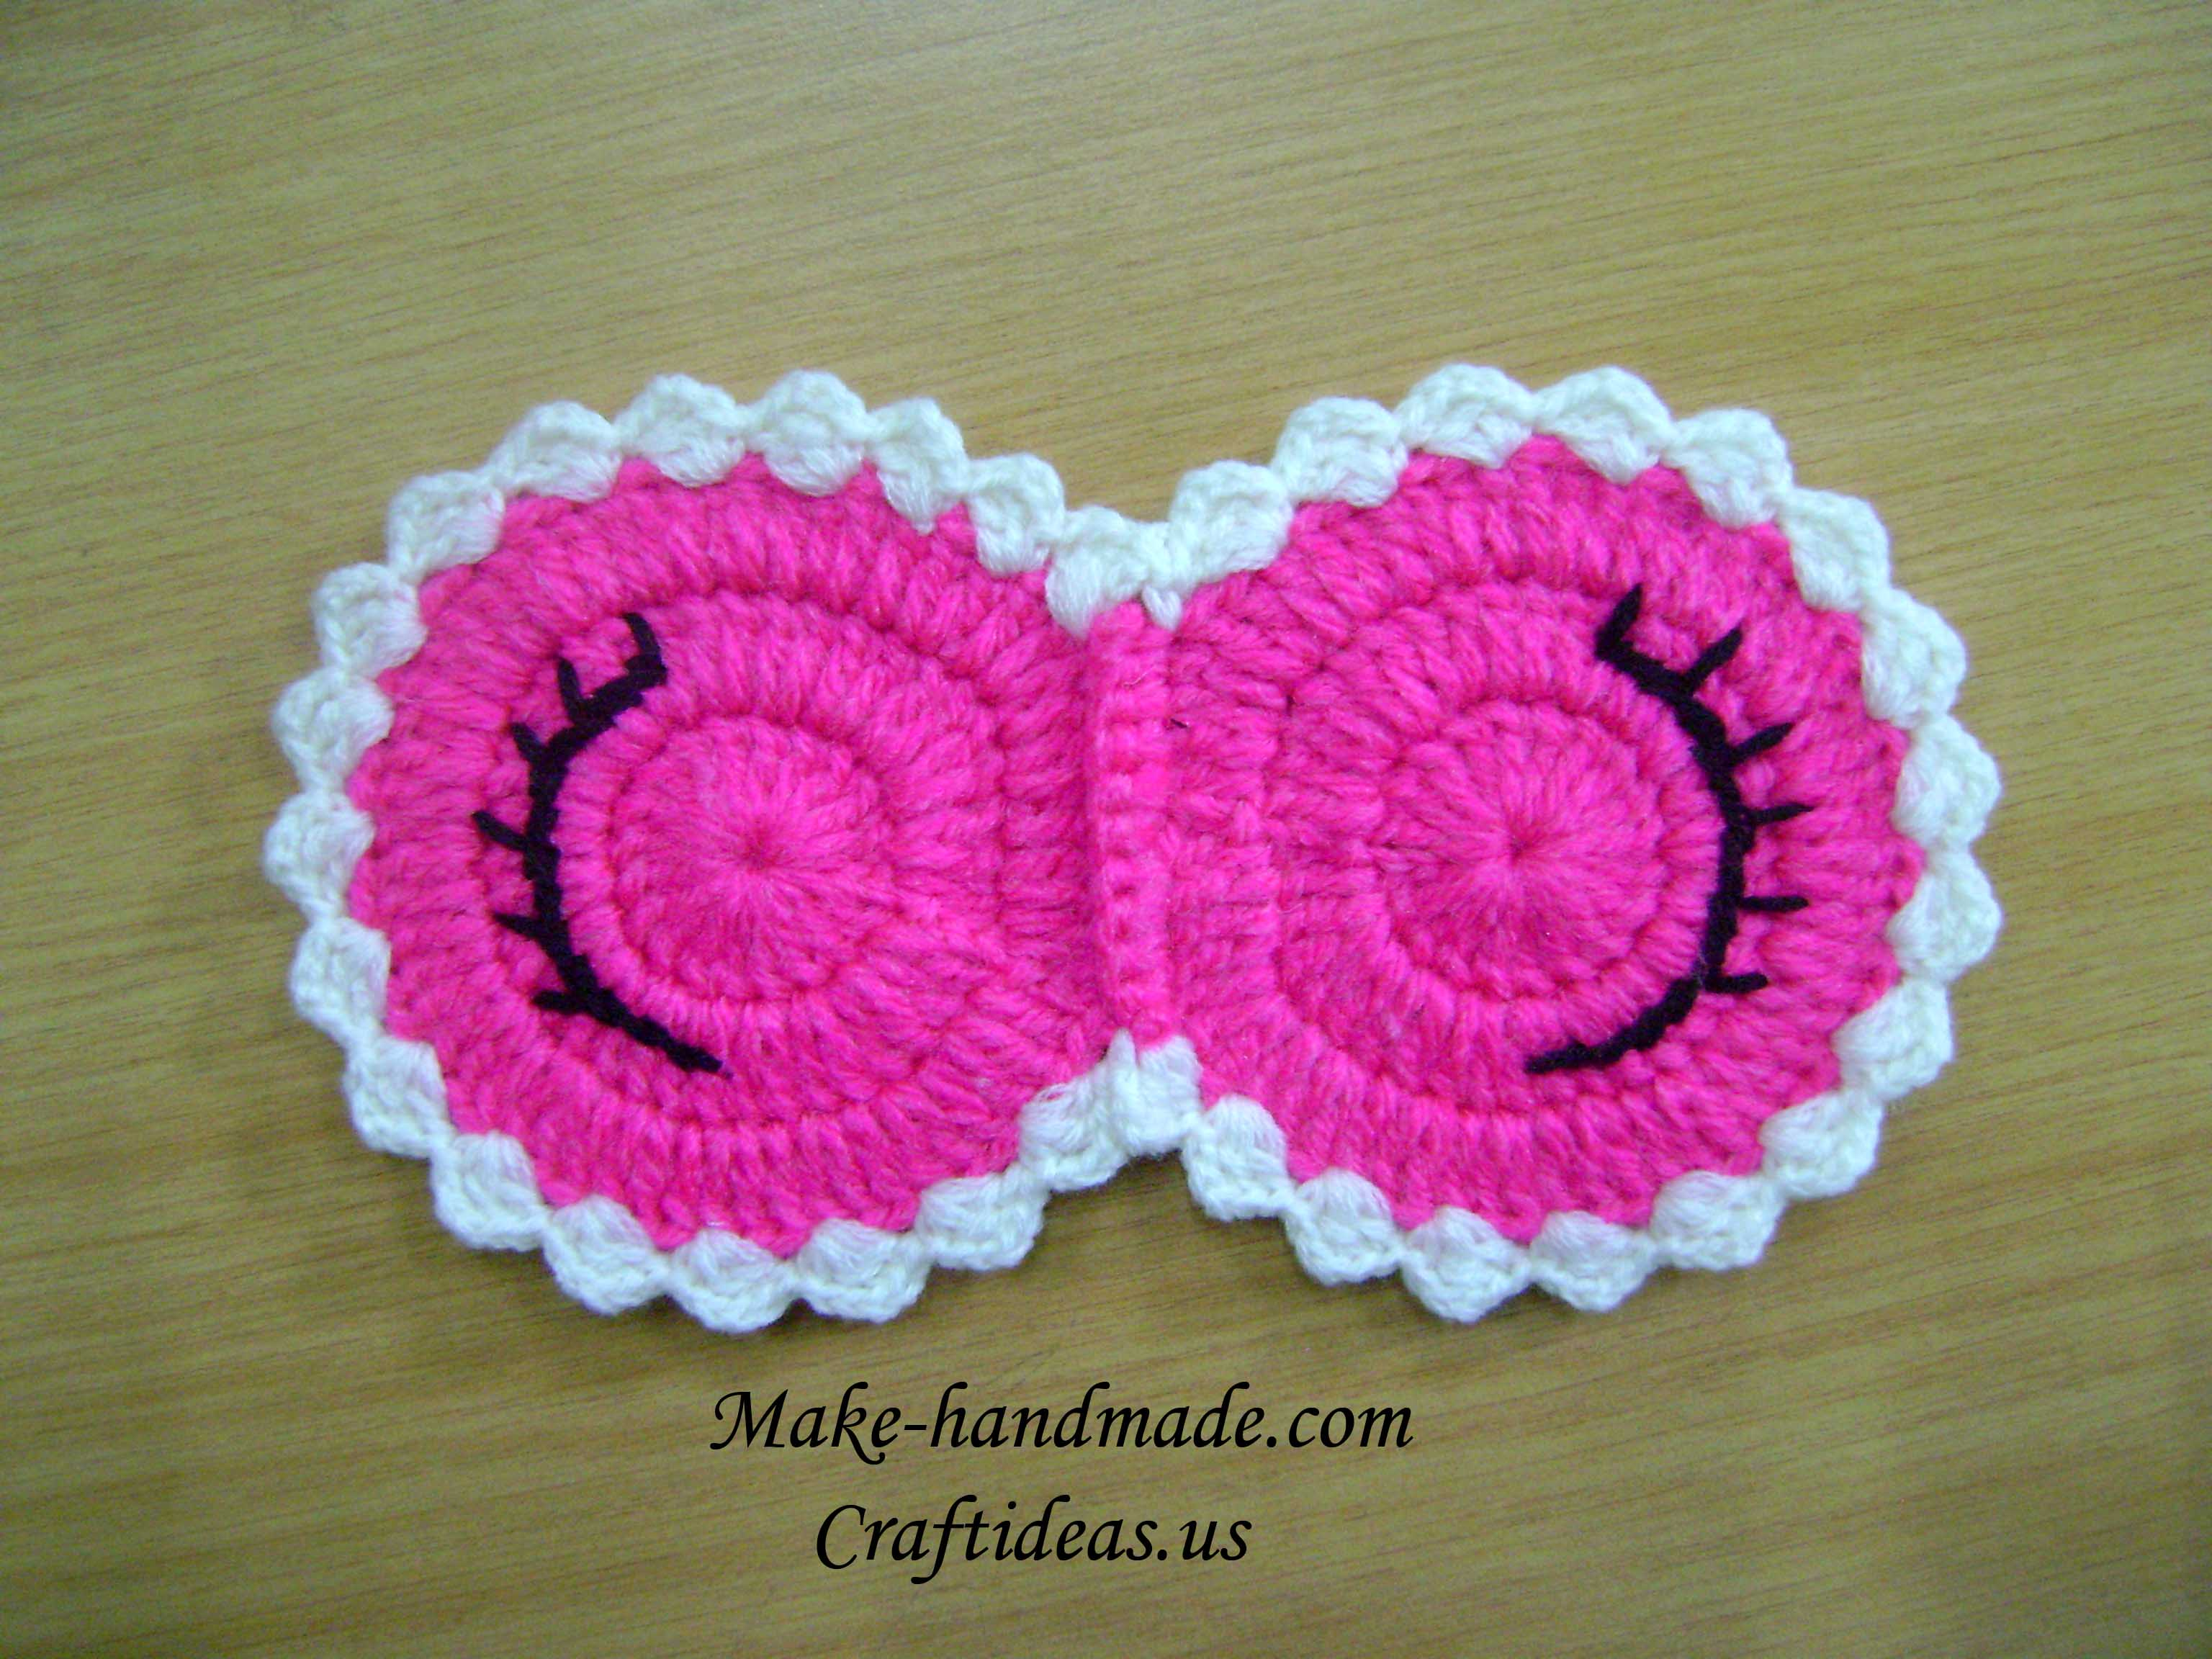 crochet ideas make handmade gifts